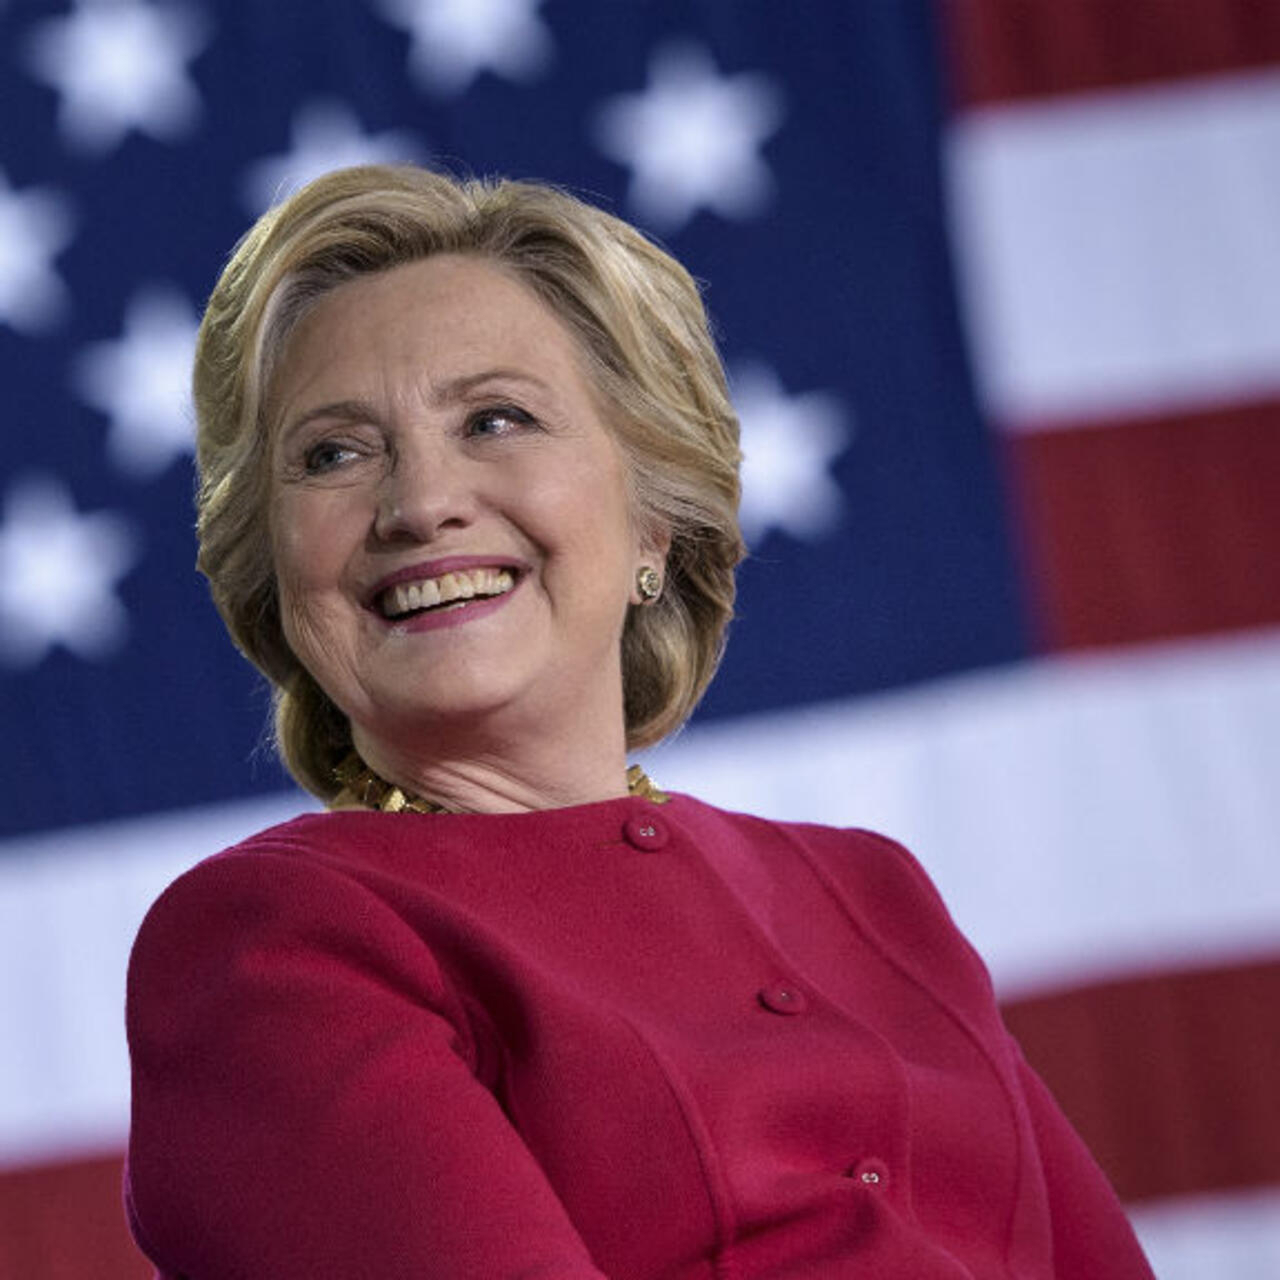 Hillary Clinton A First Lady Forever At The Threshold Of The Oval Office